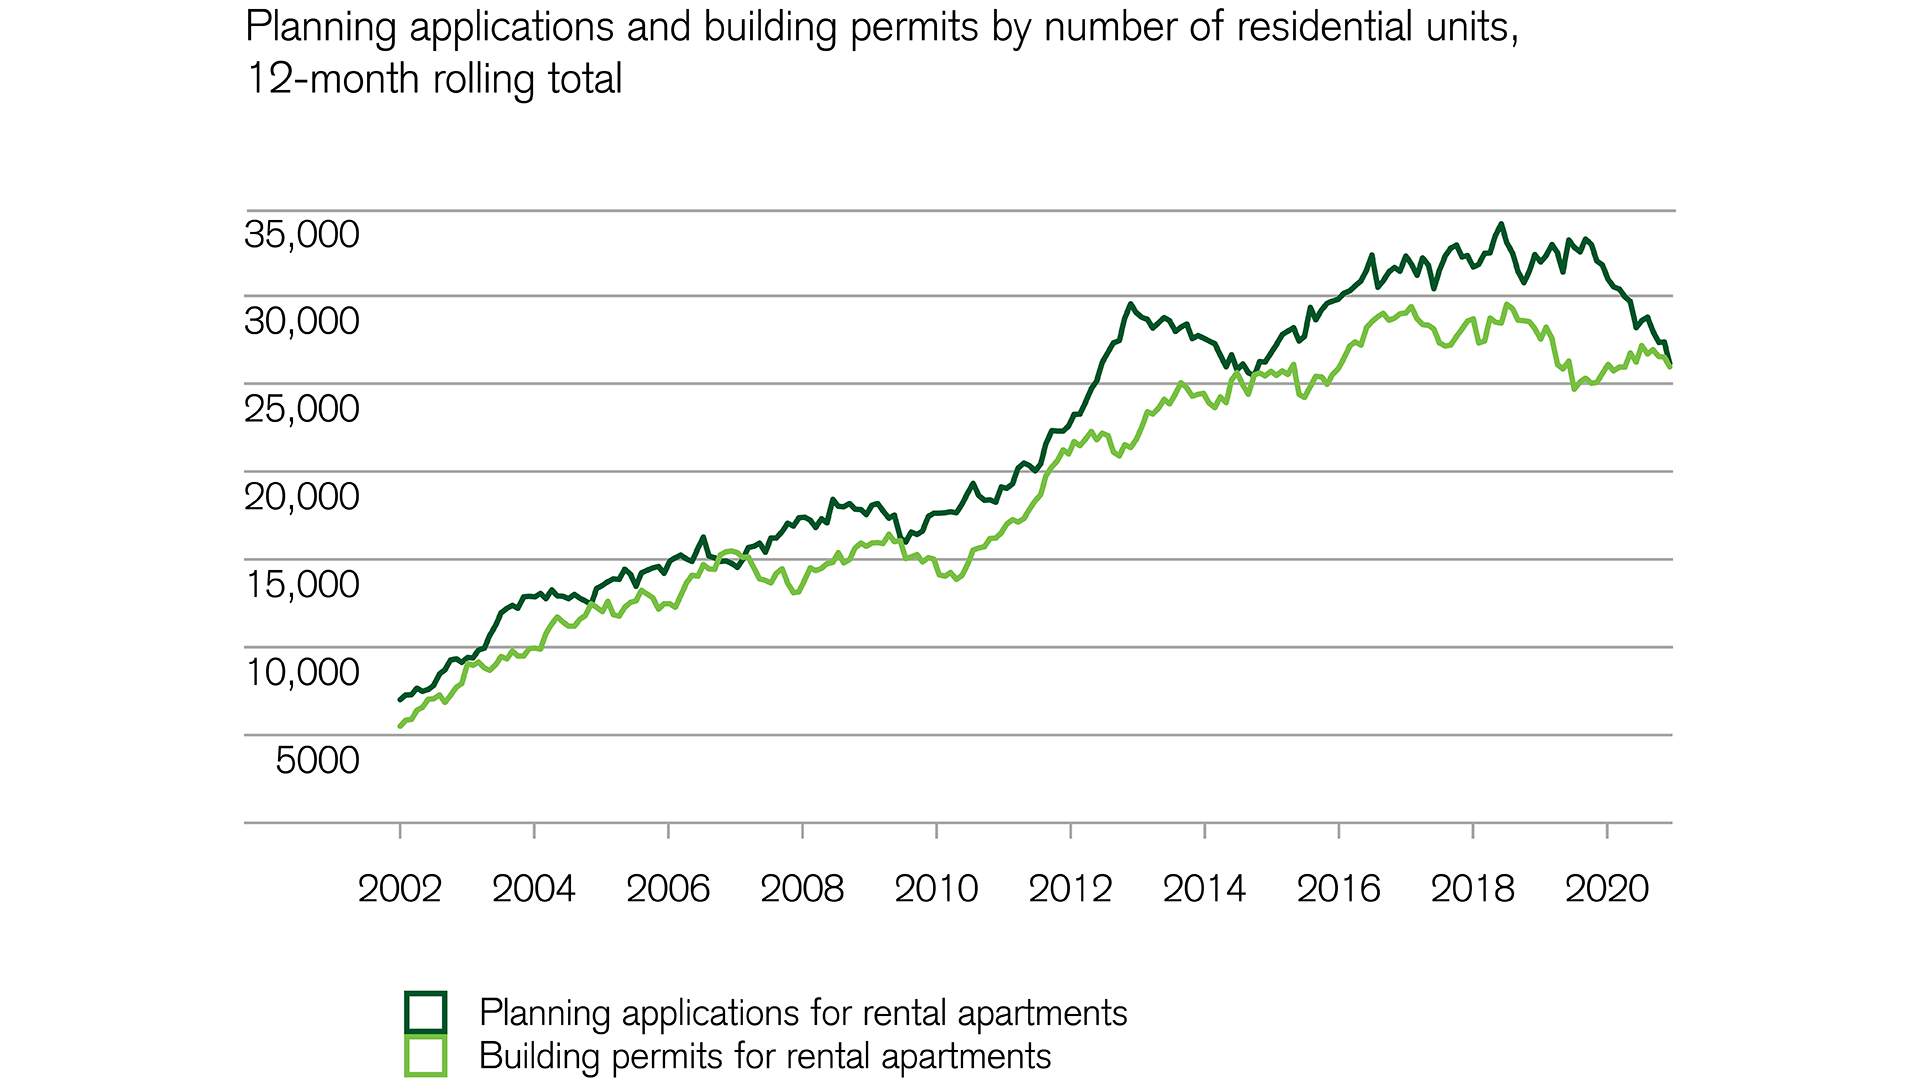 Financial markets: Declining number of planning applications for rental apartments